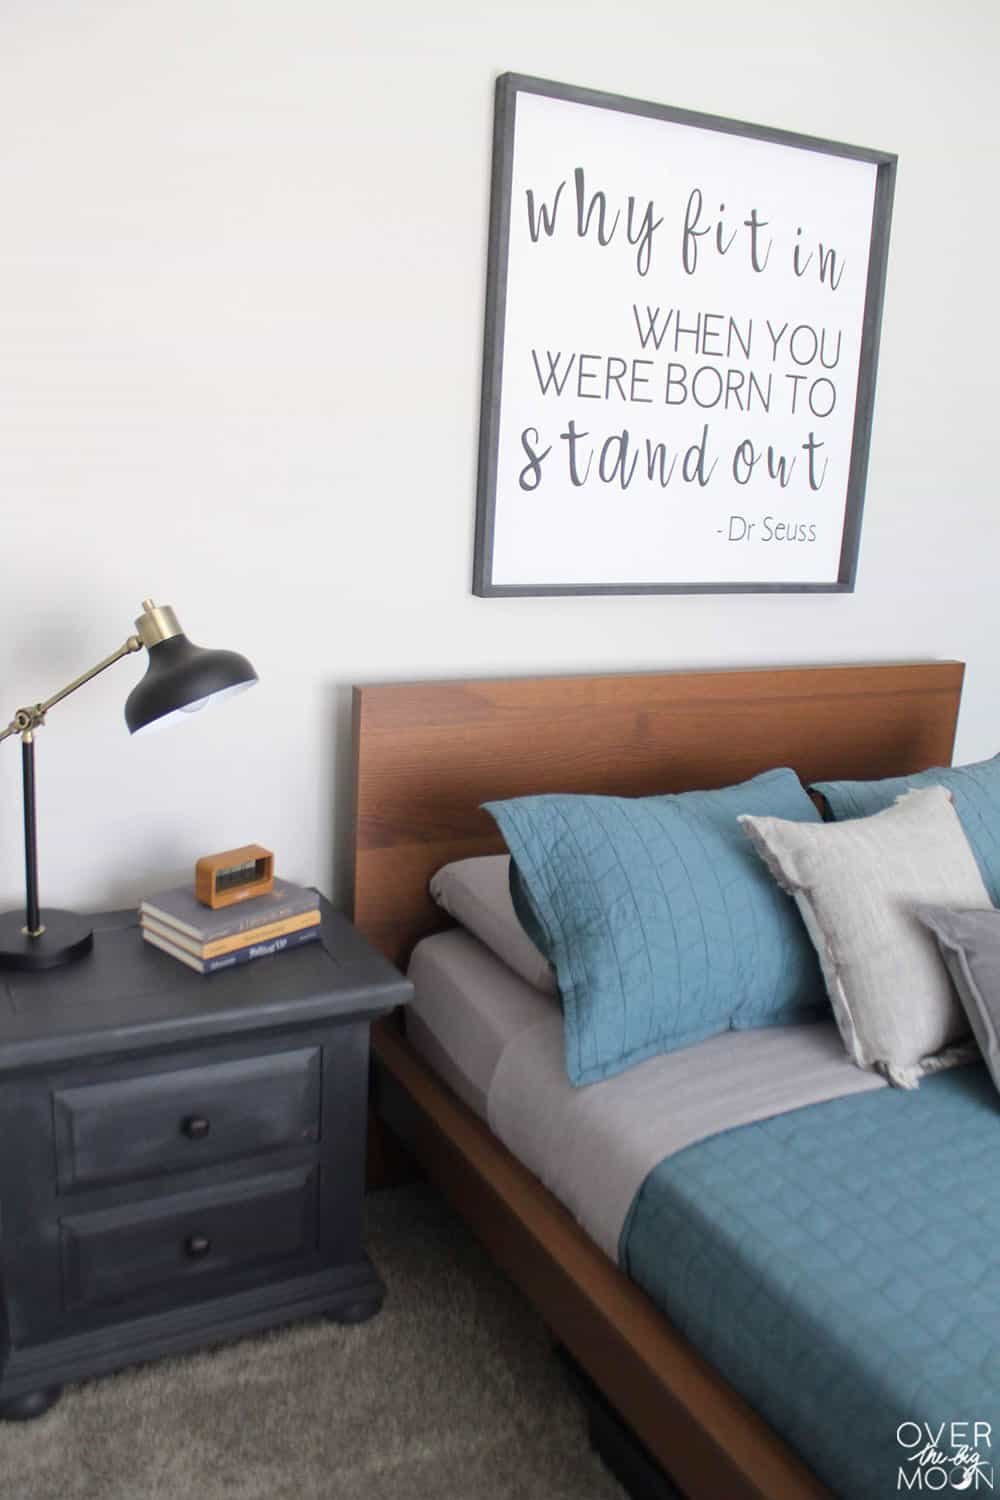 A Simple Room Refresh -- come learn 5 simple ways to do it on a budget! From overthebigmoon.com!